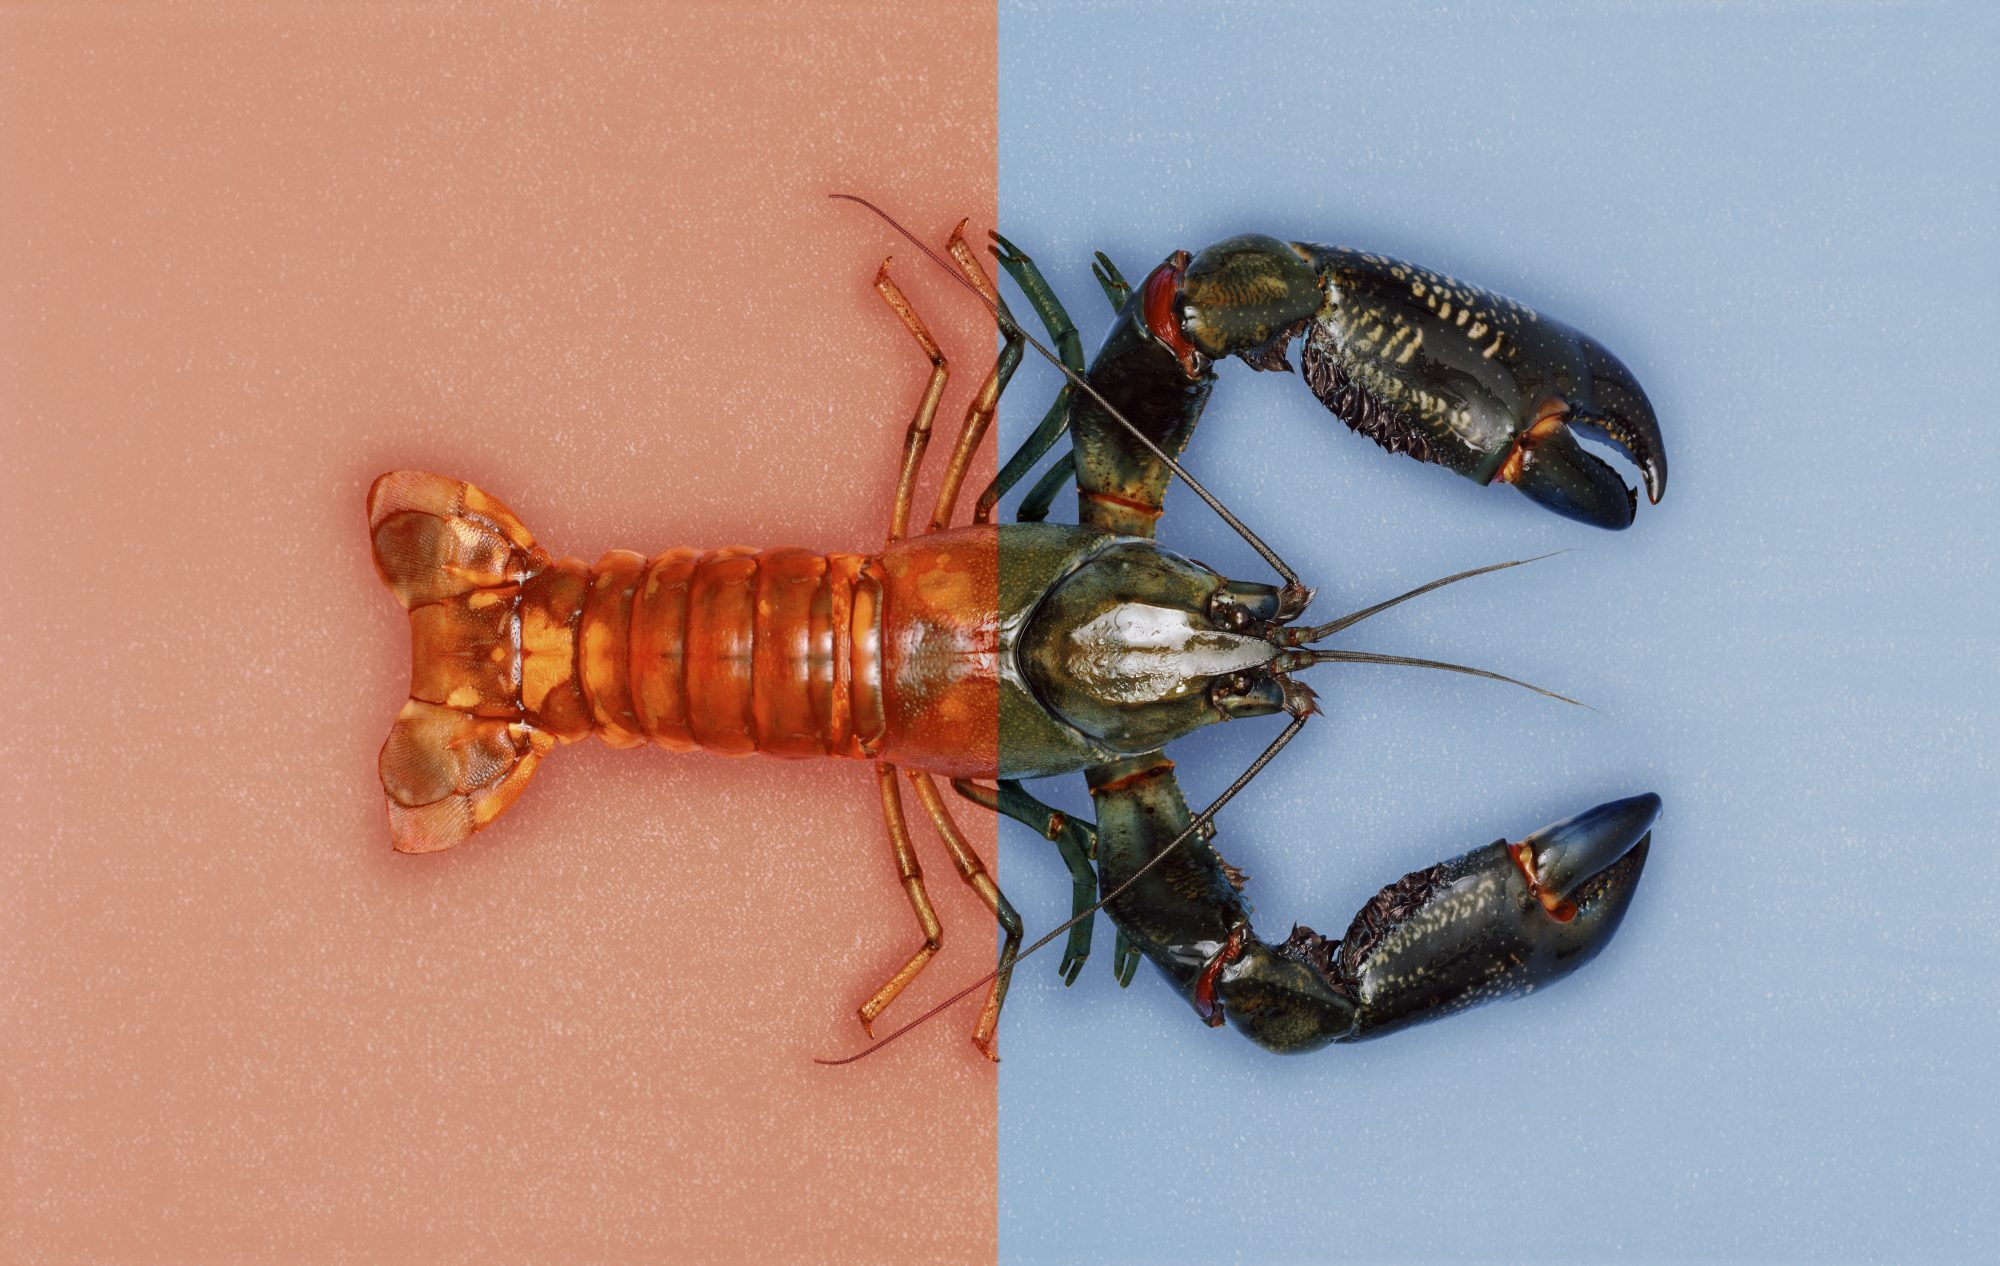 Getty Trippy Lobster Image